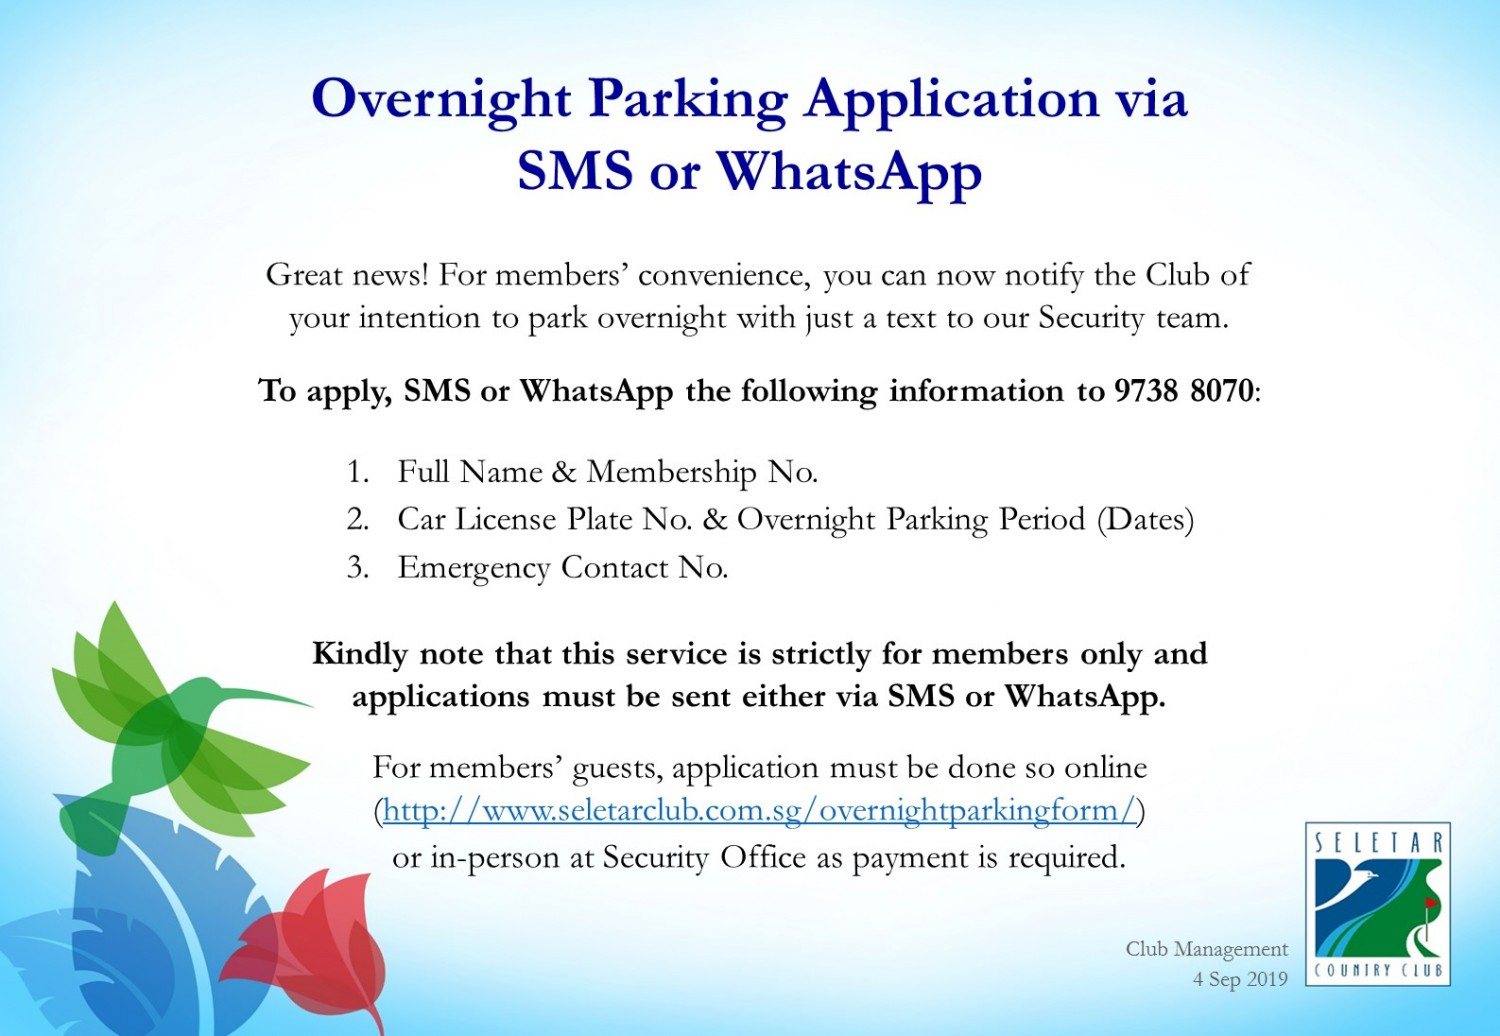 Overnight Parking Application via whatsapp or sms